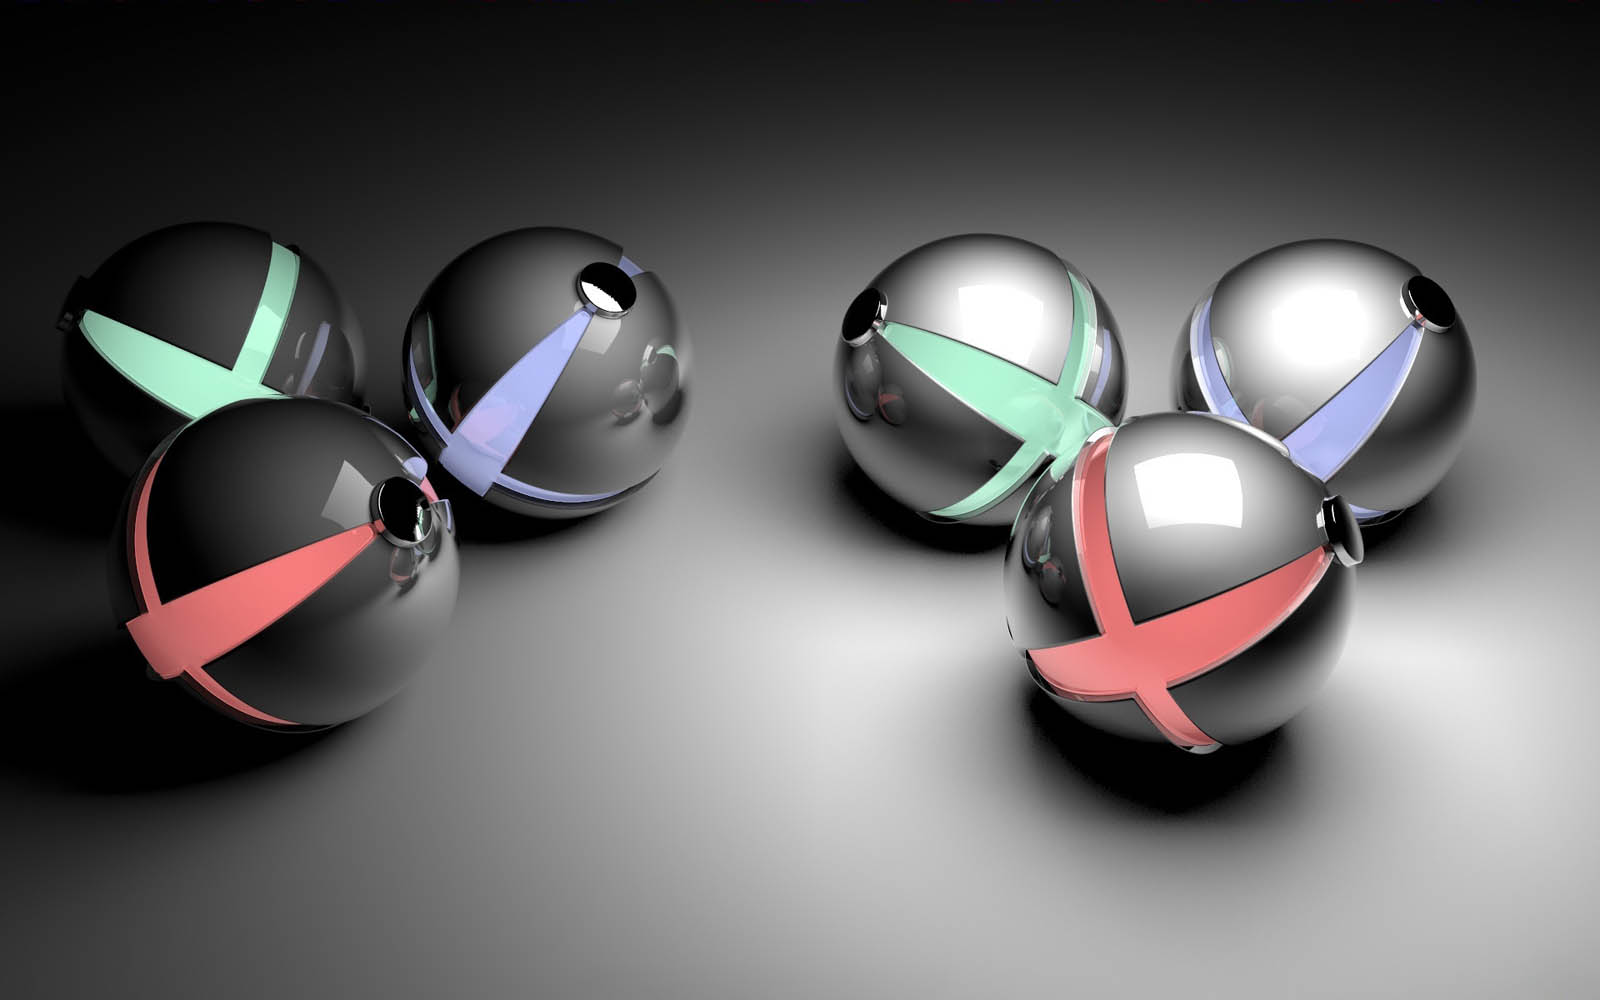 Wallpapers abstract balls wallpapers for Wallpaper modern 3d